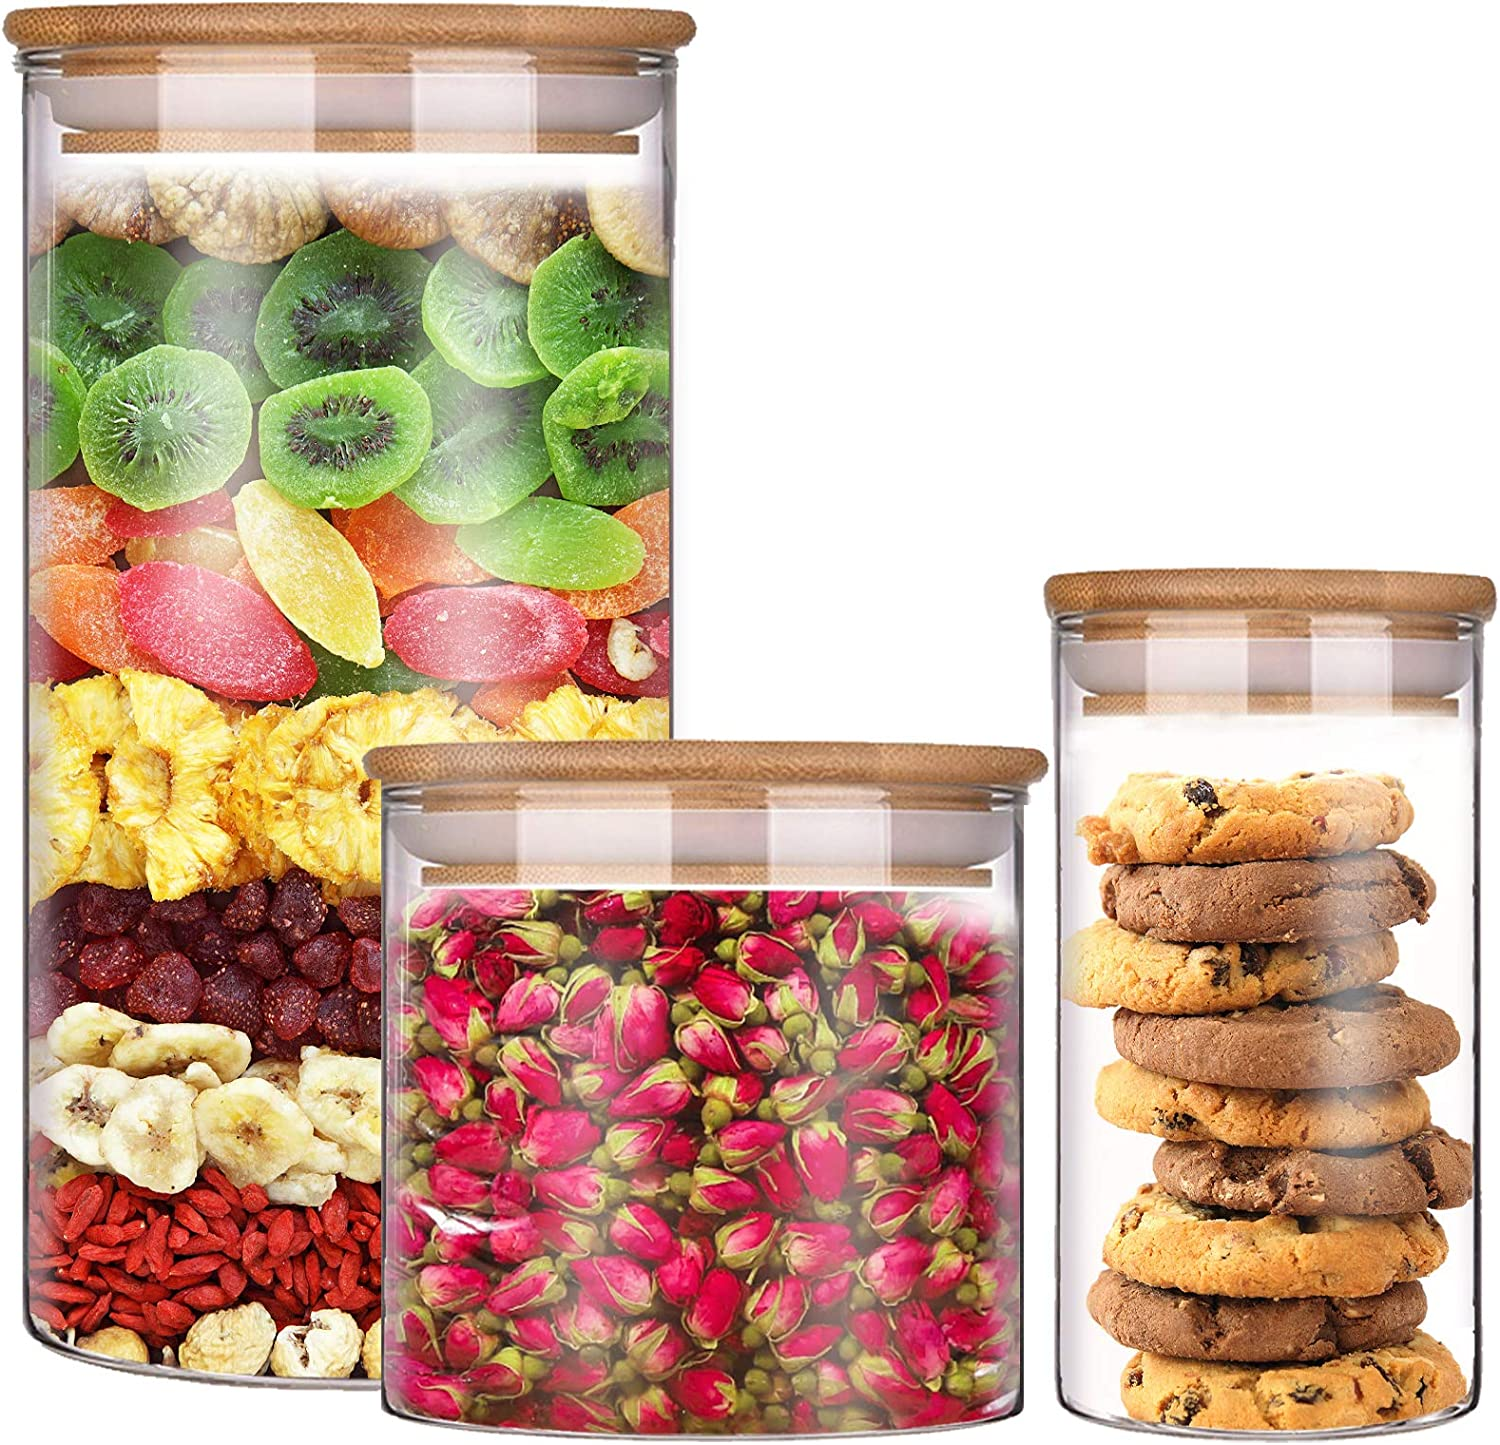 Tuzazo Stackable Kitchen Canisters Set of 3,13oz/24oz/54oz - Clear Glass Food Storage Jars Containers with Airtight Bamboo Lid for Candy, Cookie, Rice, Sugar, Flour, Pasta, Nuts